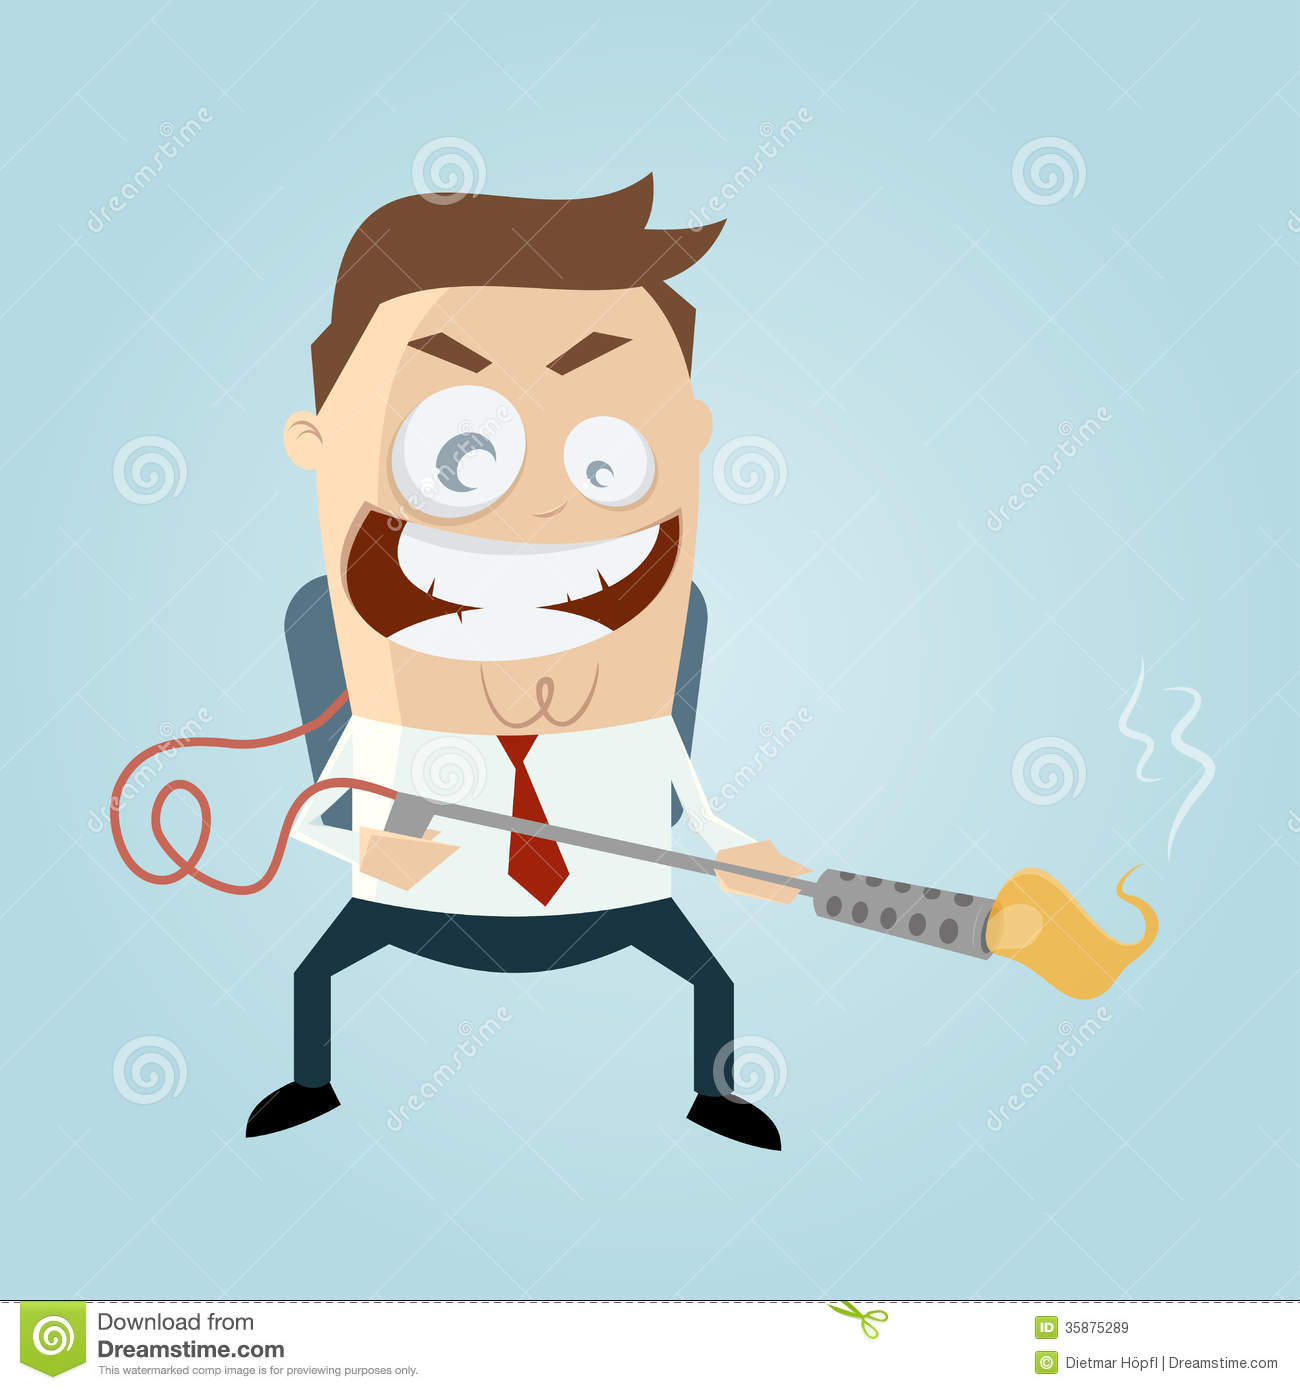 Cartoon Man With Flamethrower Royalty Free Stock Images